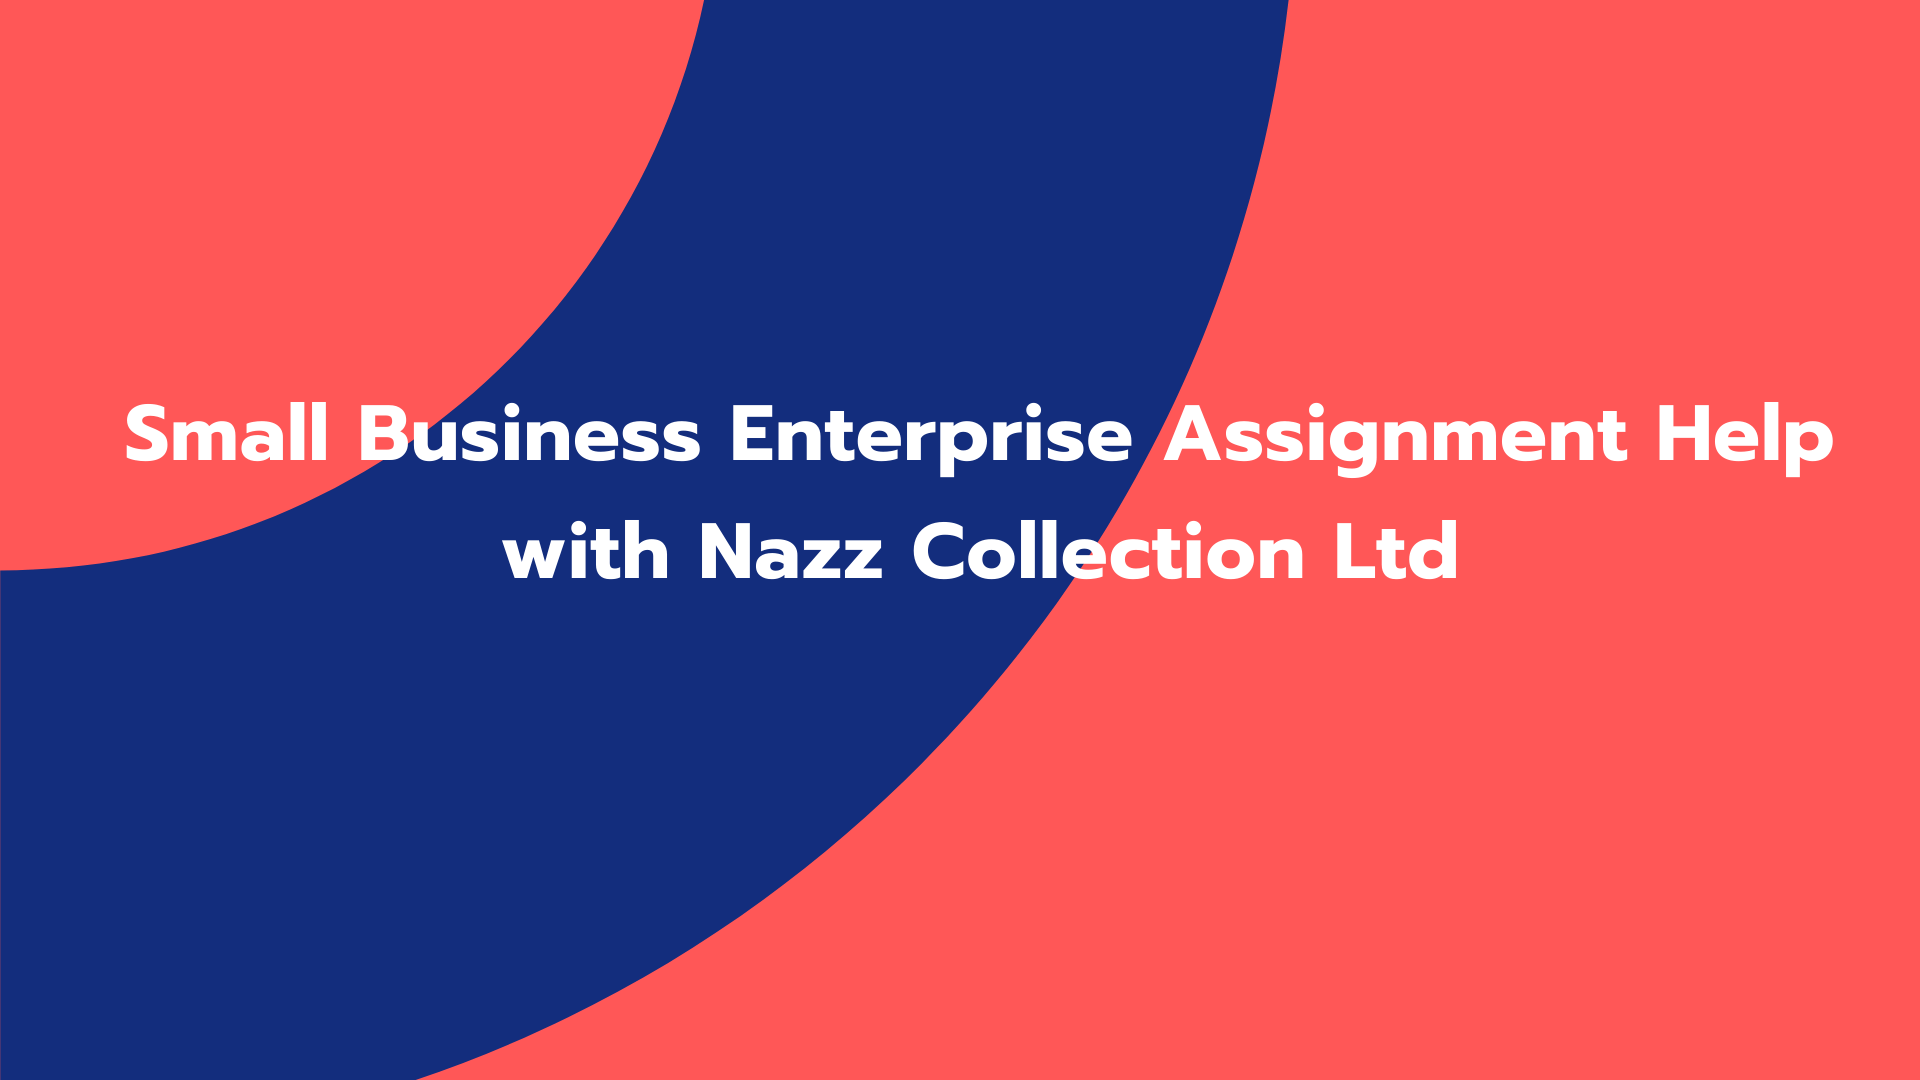 Small Business Enterprise Assignment Help with Nazz Collection Ltd